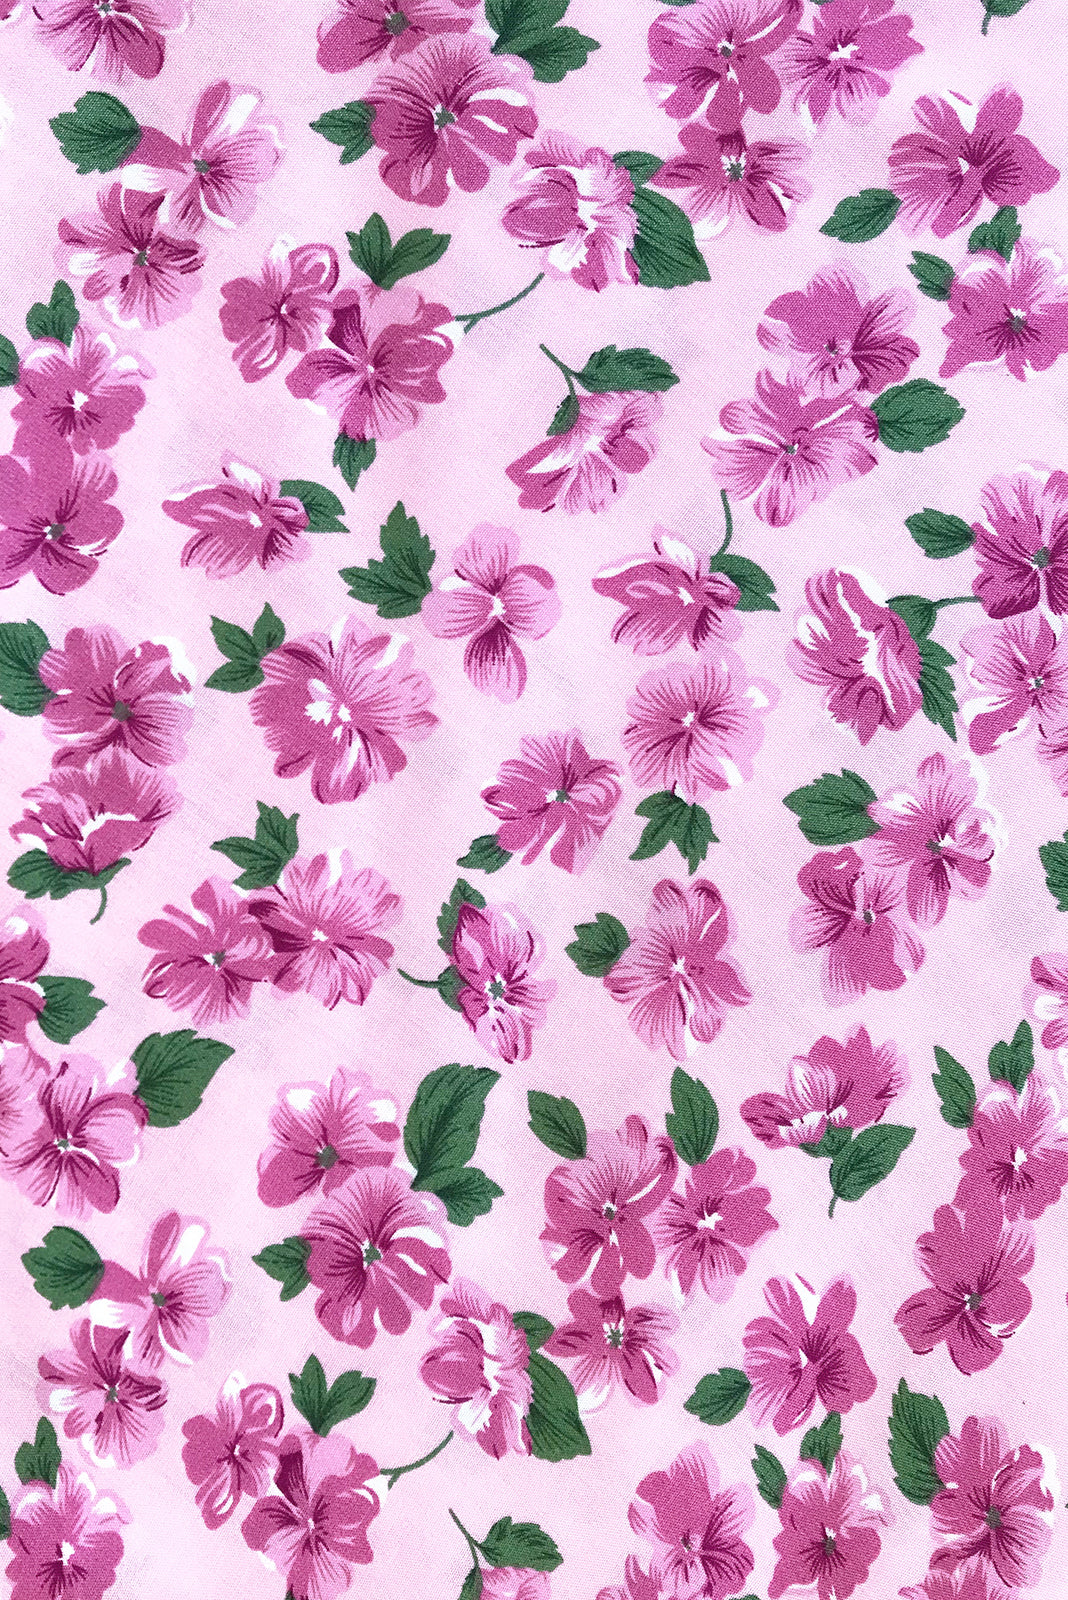 Fabric Swatch of Primrose In he Pink Dress featuring 100% rayon in pink base with mauve floral print.